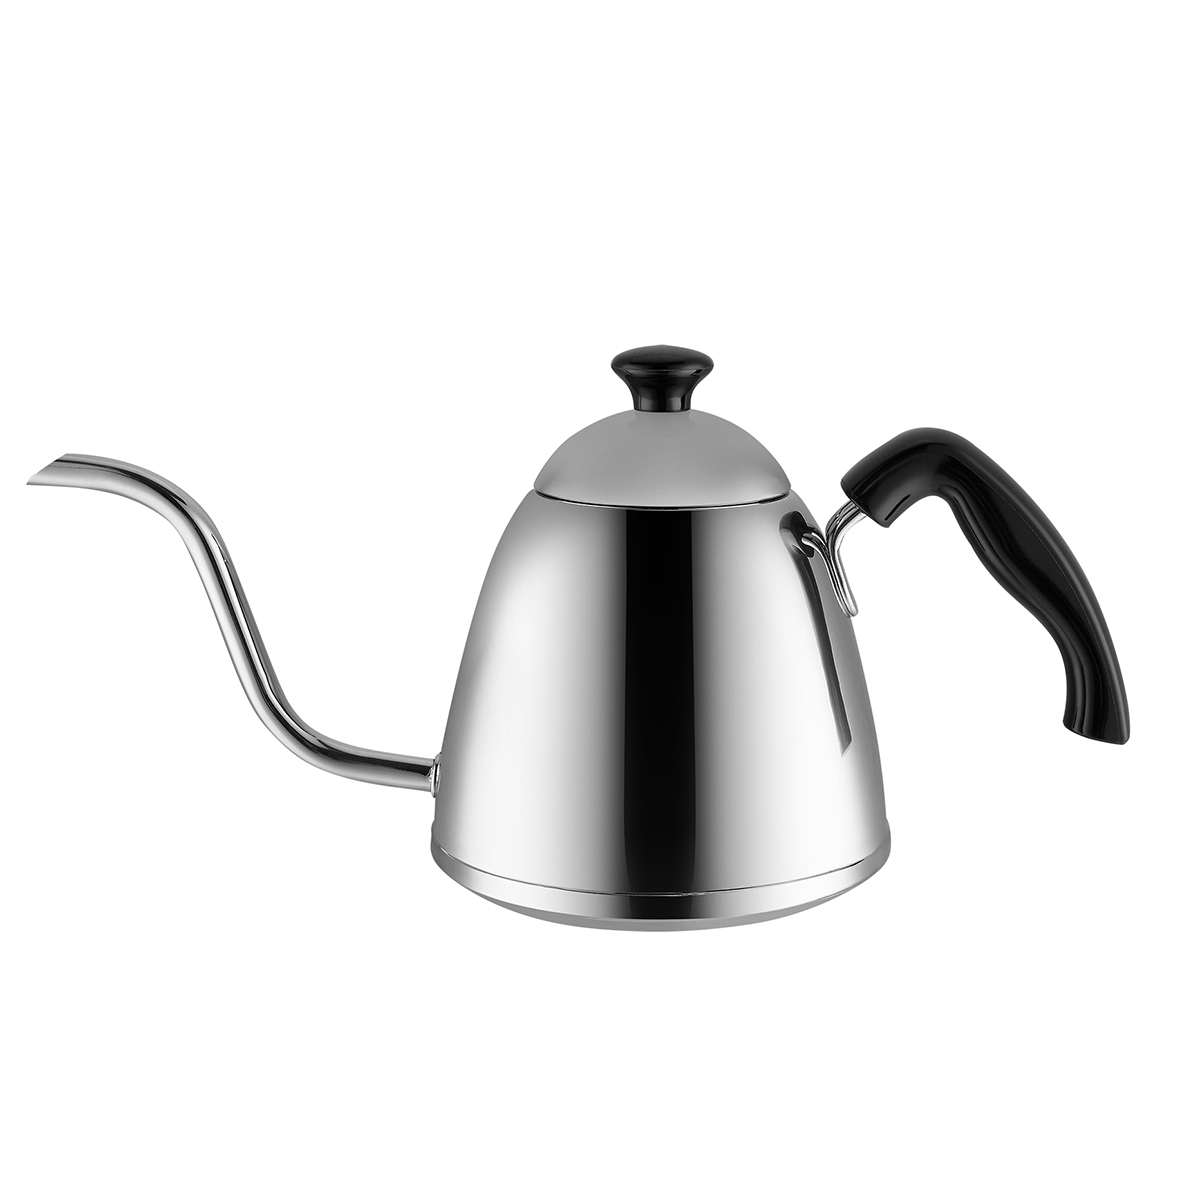 900ml Pour Over Stainless Steel Coffee Kettle with Bakelite Handle